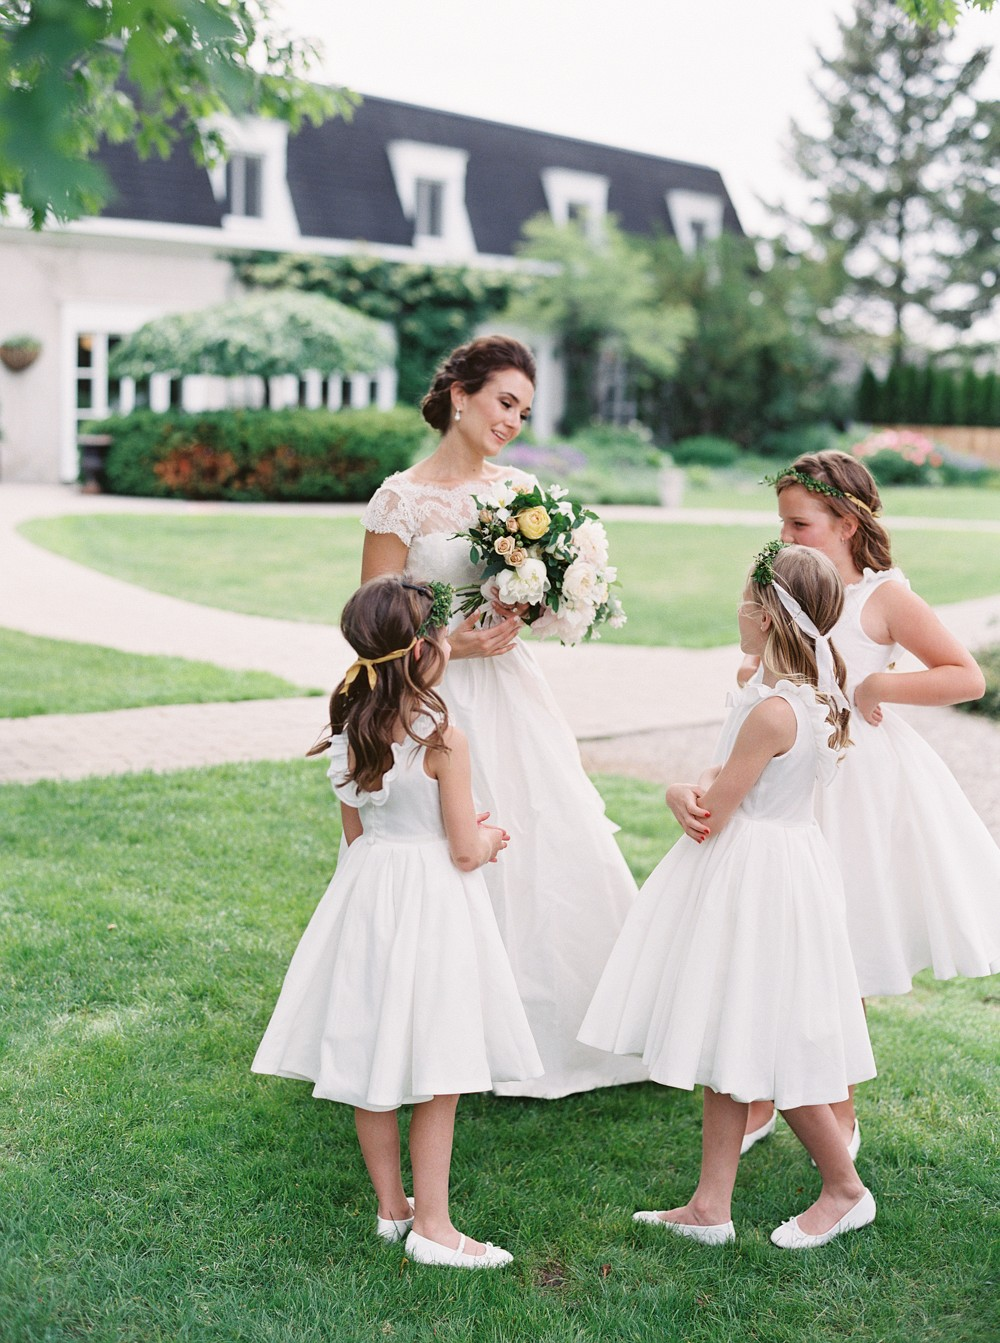 Flower girls | Sophisticated Real Wedding in Ontario by When He Found Her on Wedding Sparrow